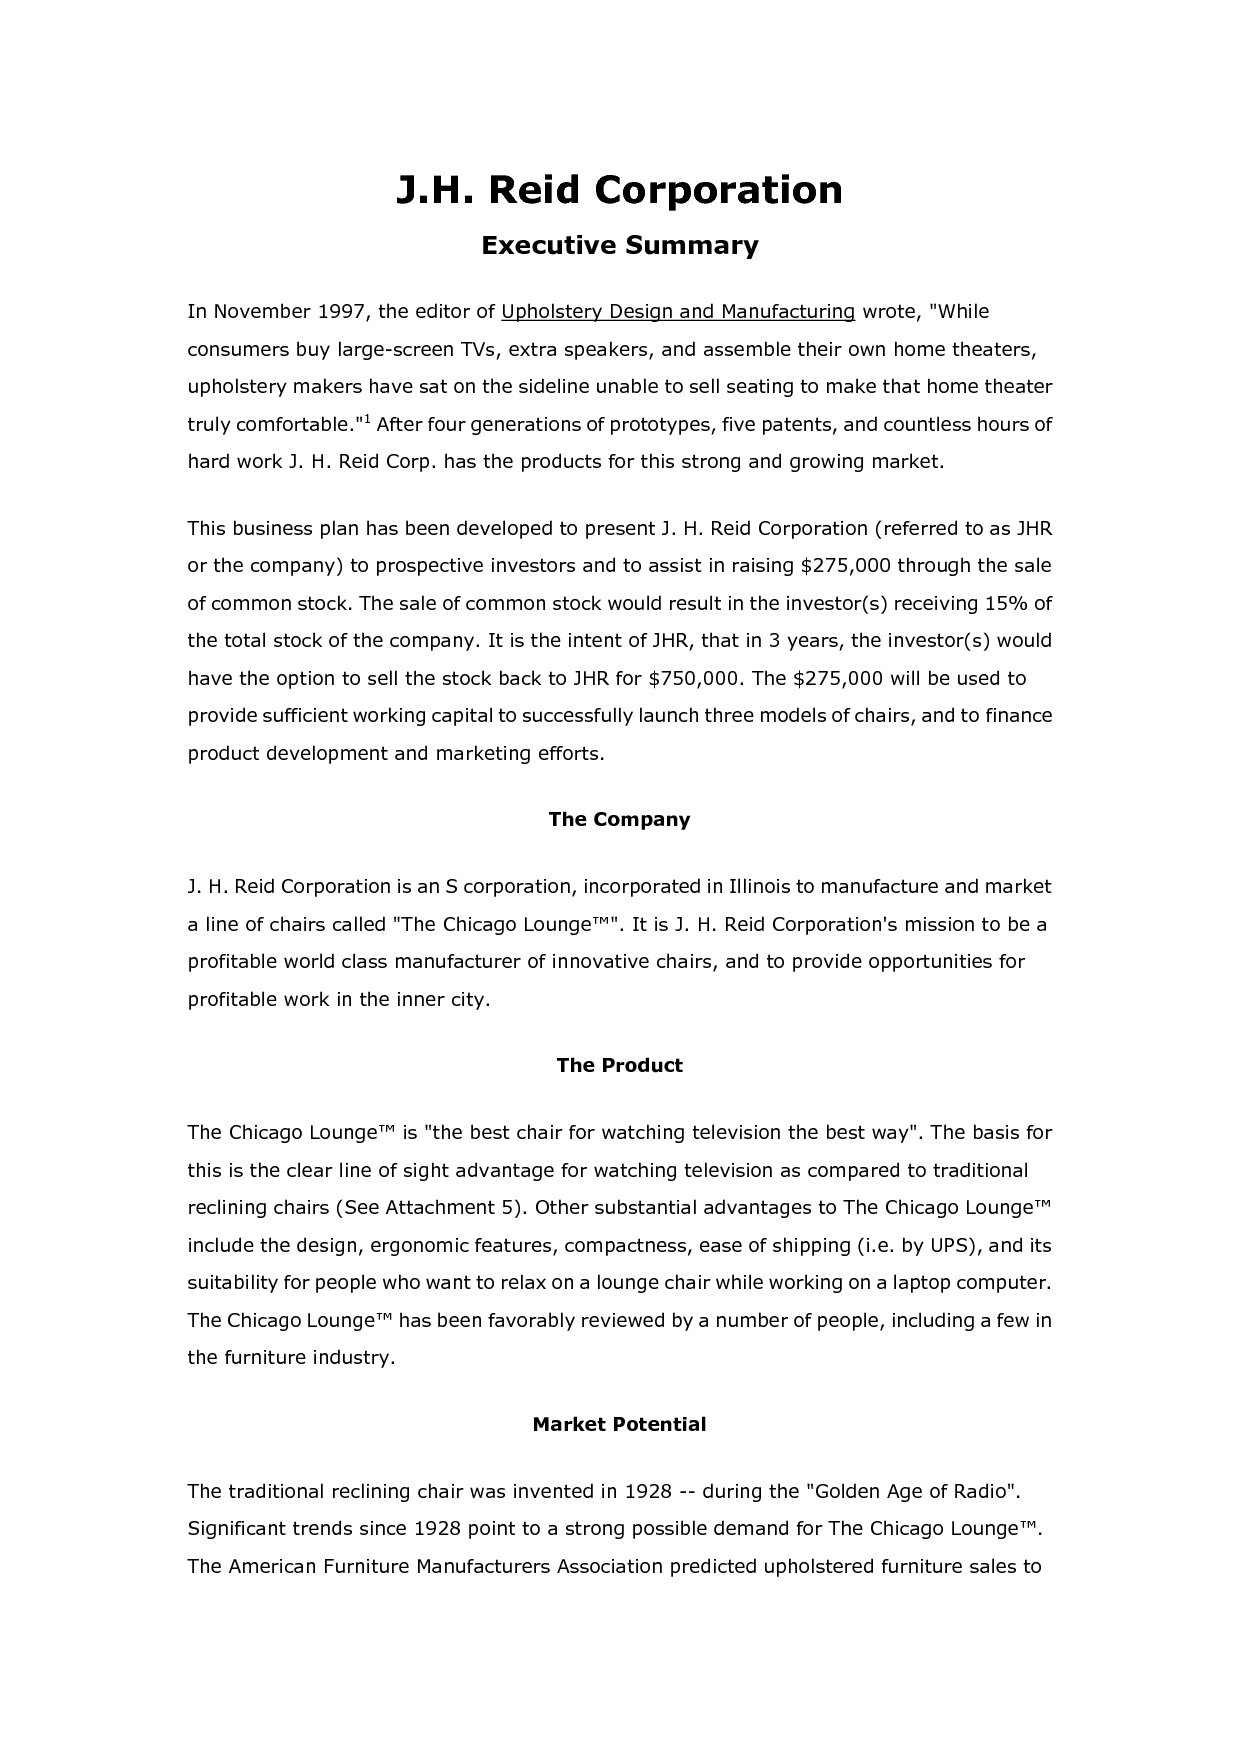 modest proposal essay examples davephos synthesis essay a modest essay proposal template essay proposal template proposal proposal essay examples sample proposal essay modest